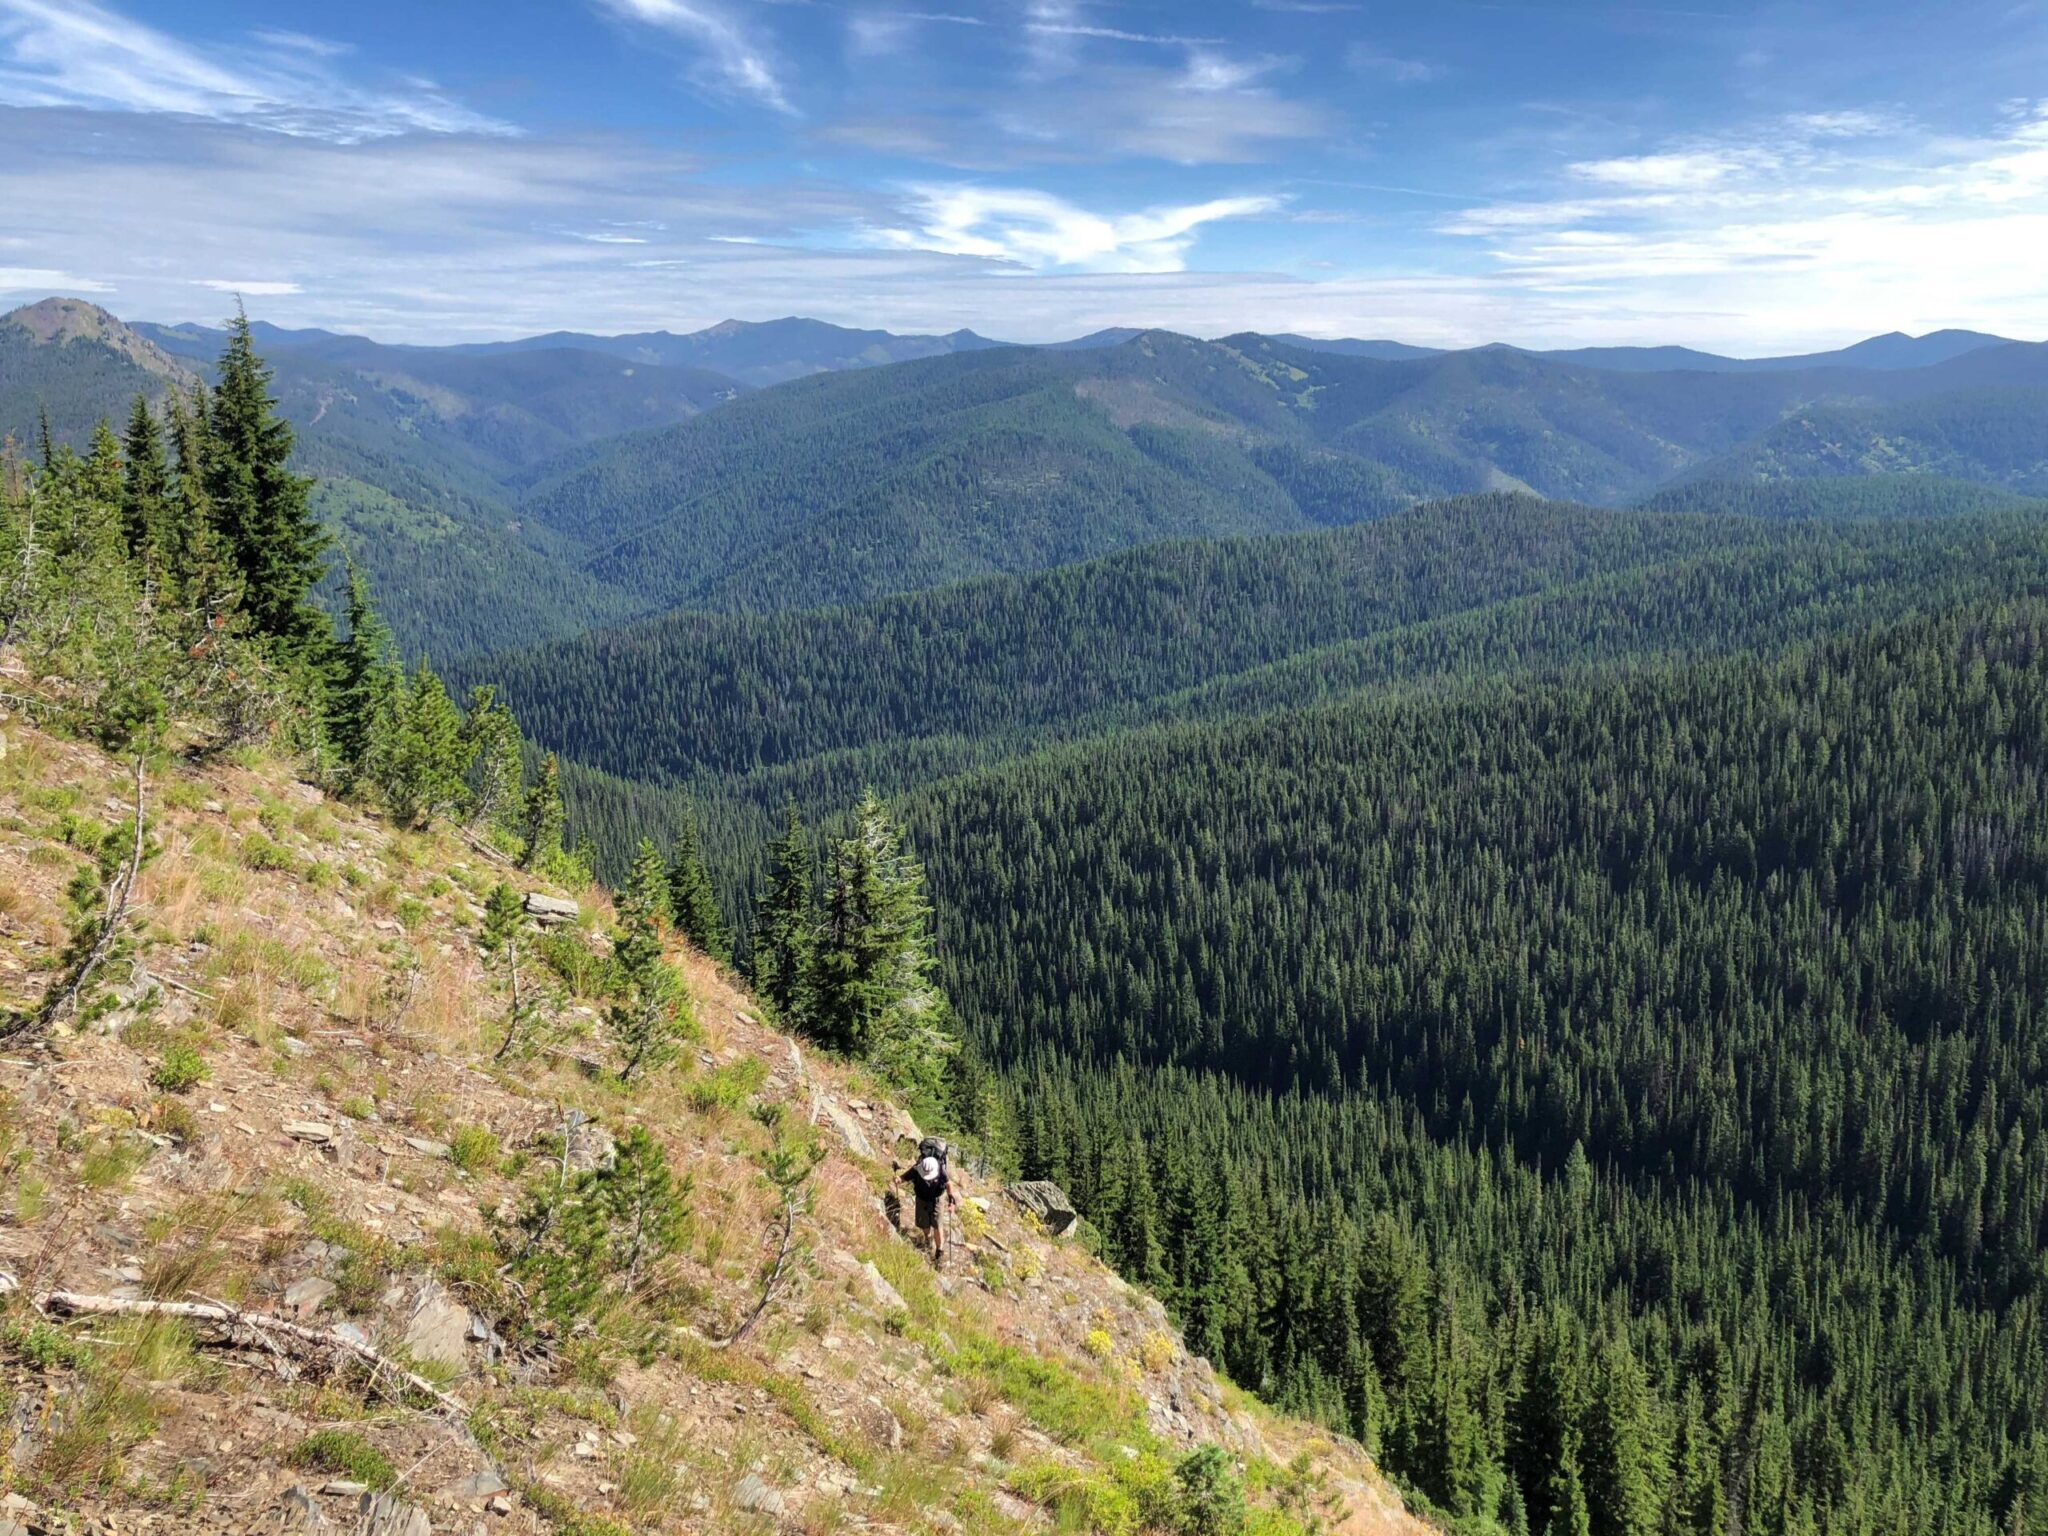 Person overlooking a forested cliff while on a hike.